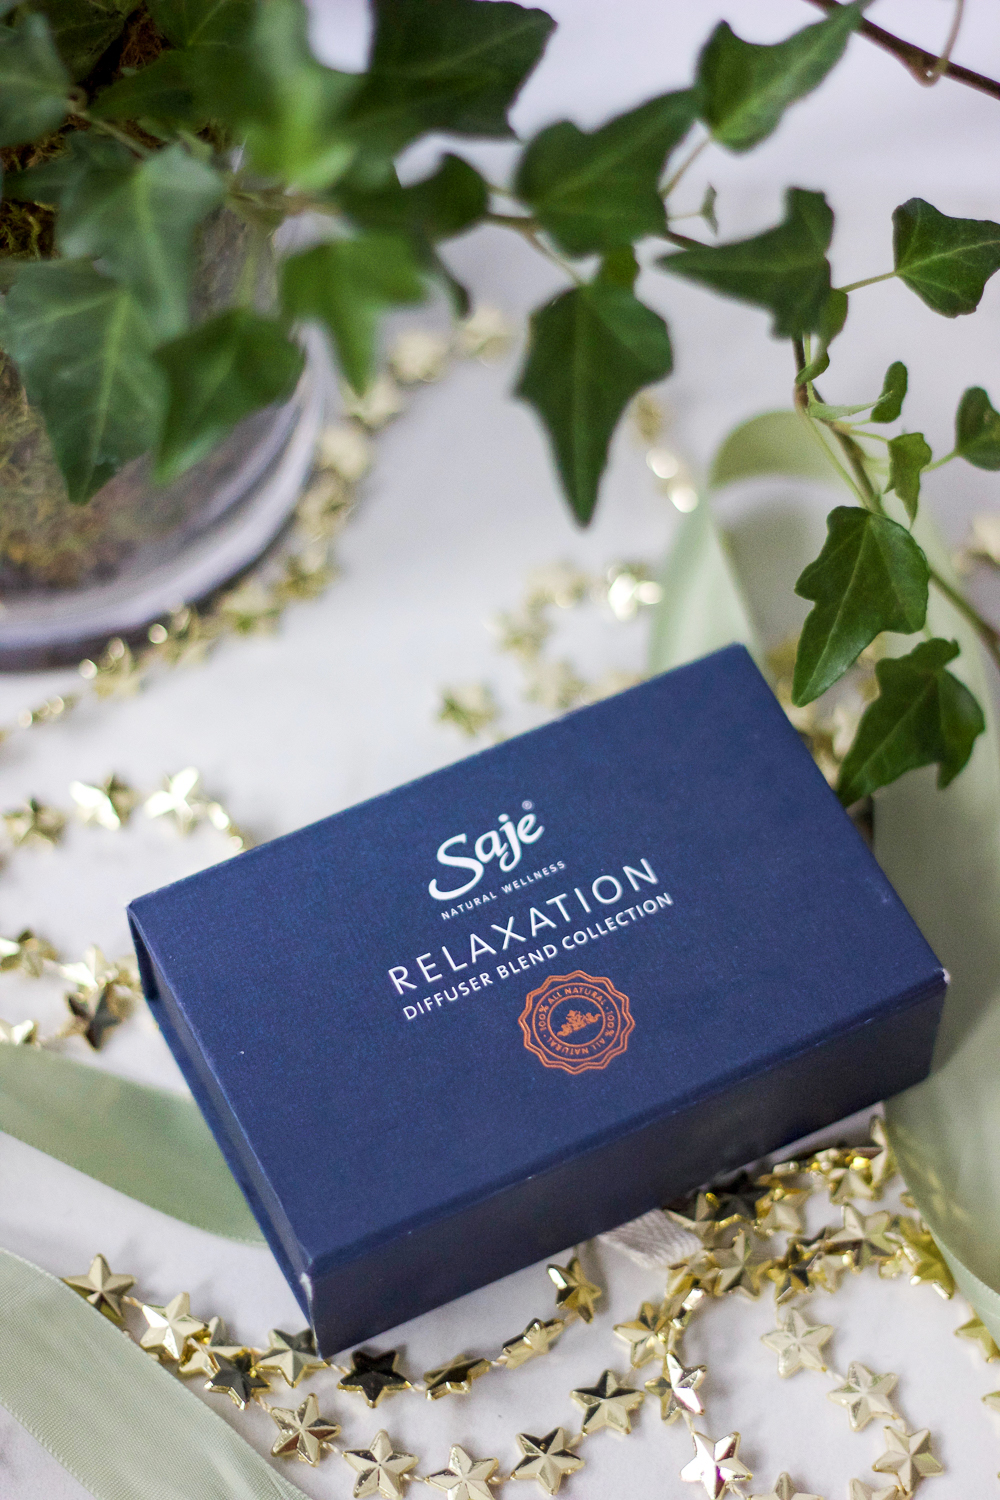 Last minute holiday gift ideas from Saje Natural Wellness - Relaxation diffuser blends